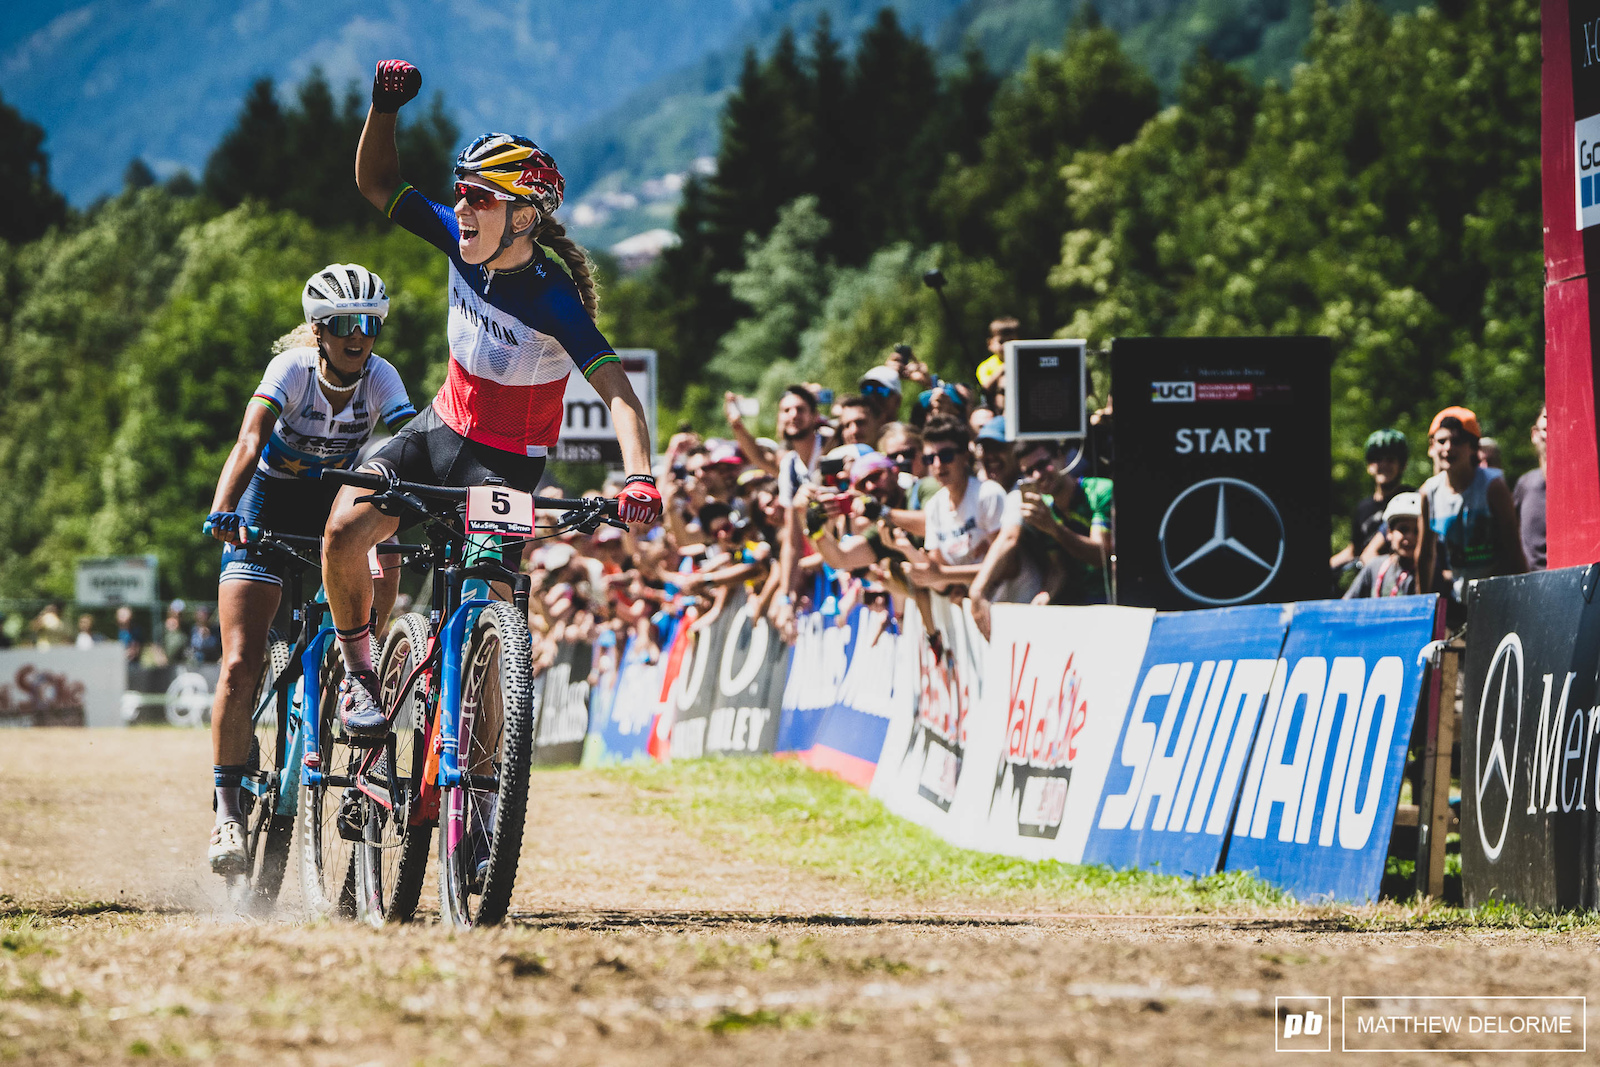 Pauline Ferrand Prevot had an incredible ride and took a well deserved win.